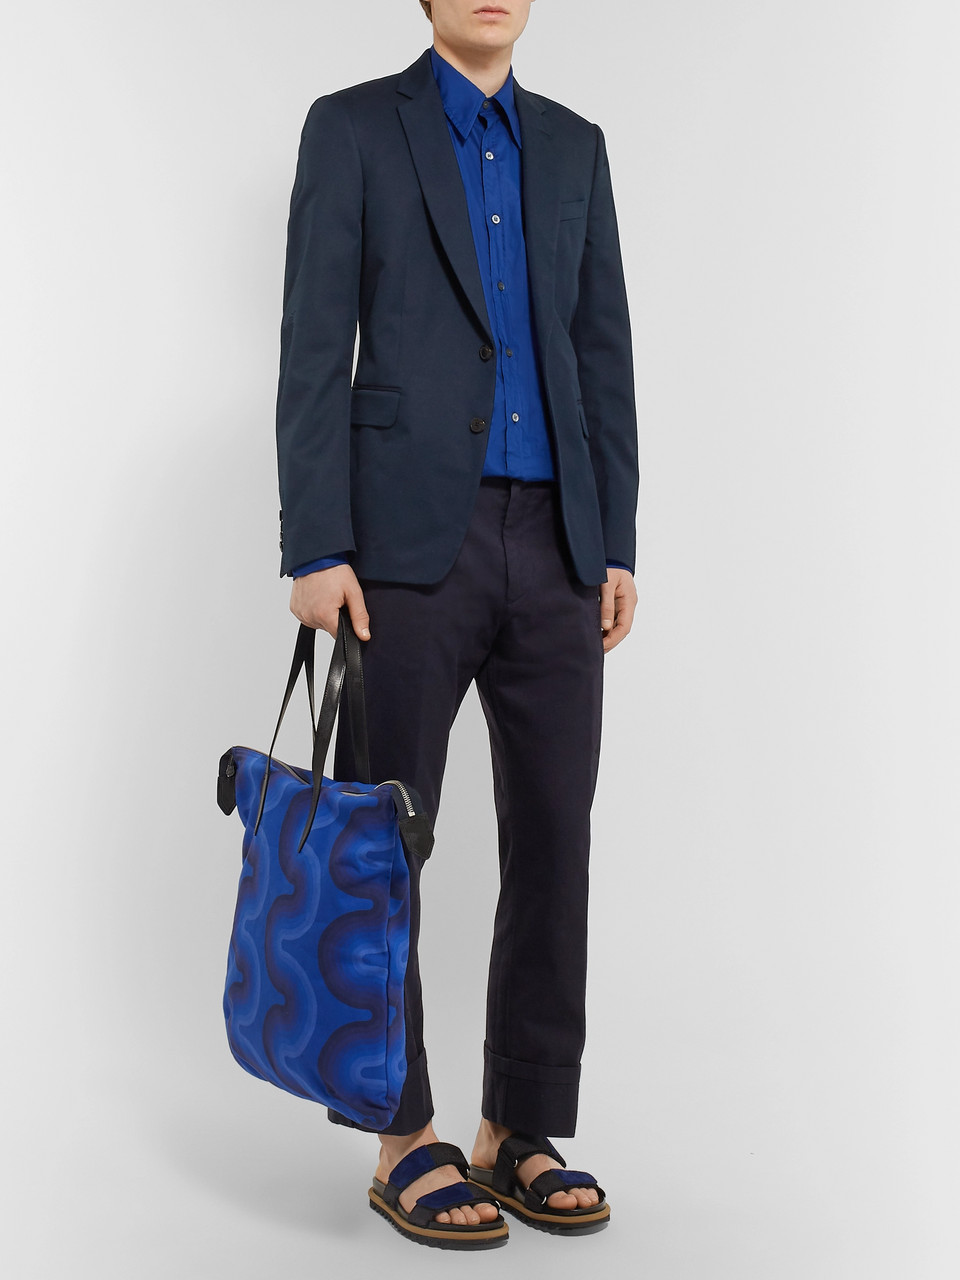 Dries Van Noten Navy Slim-Fit Cotton-Twill Suit Jacket